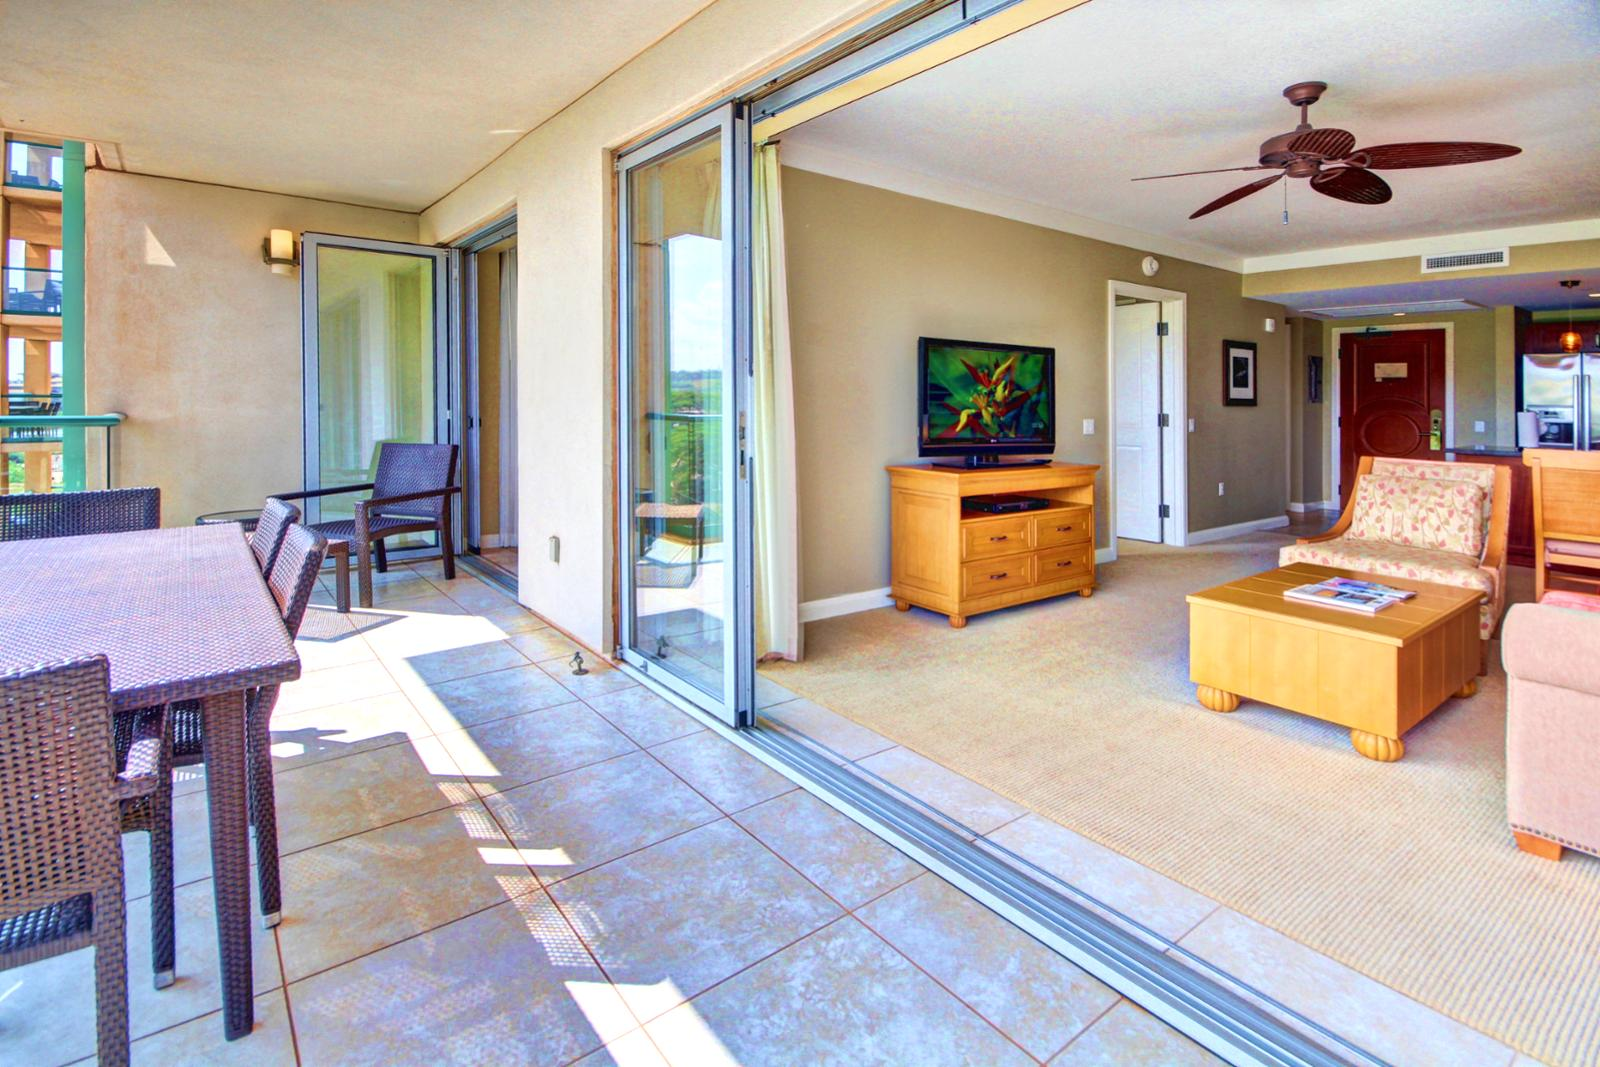 Lanai has NANO doors that can be opened and slid to really bring that outdoor living in.